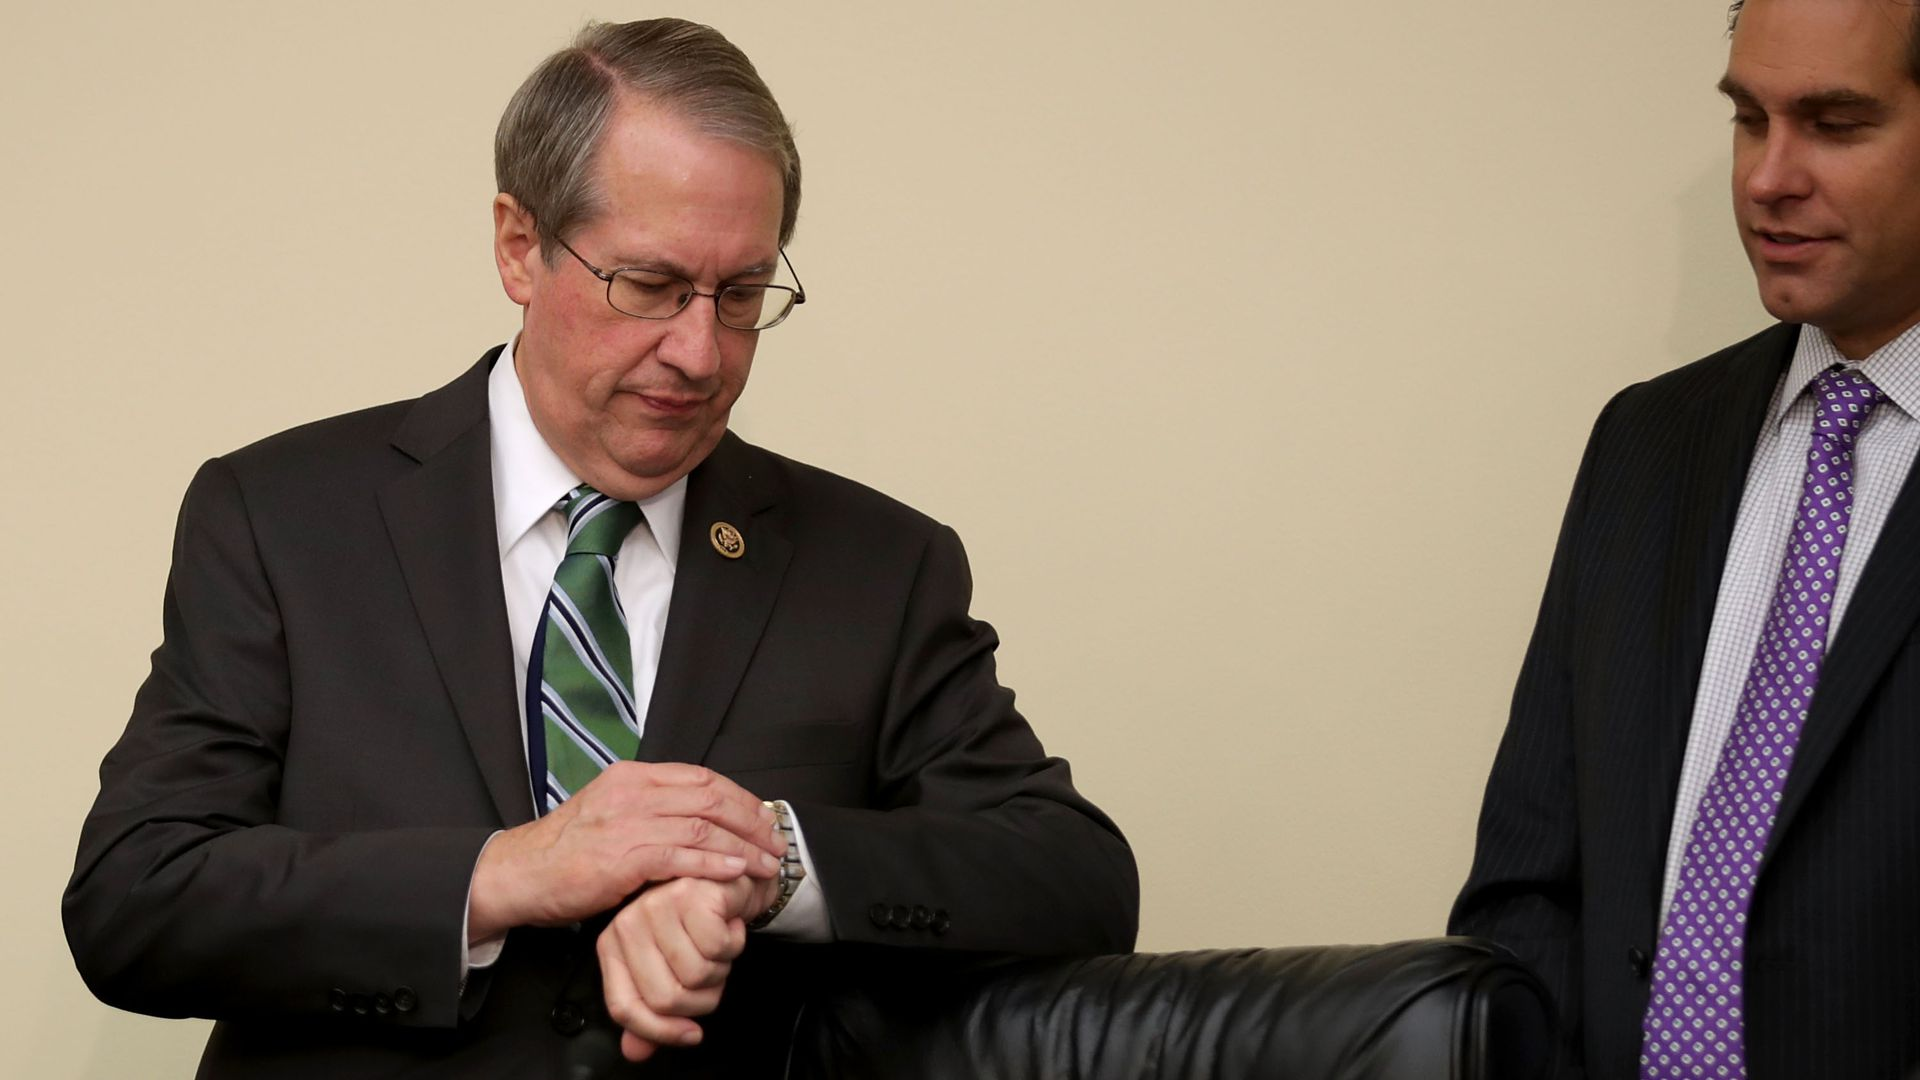 Bob Goodlatte checks his watching wearing a suit and tie